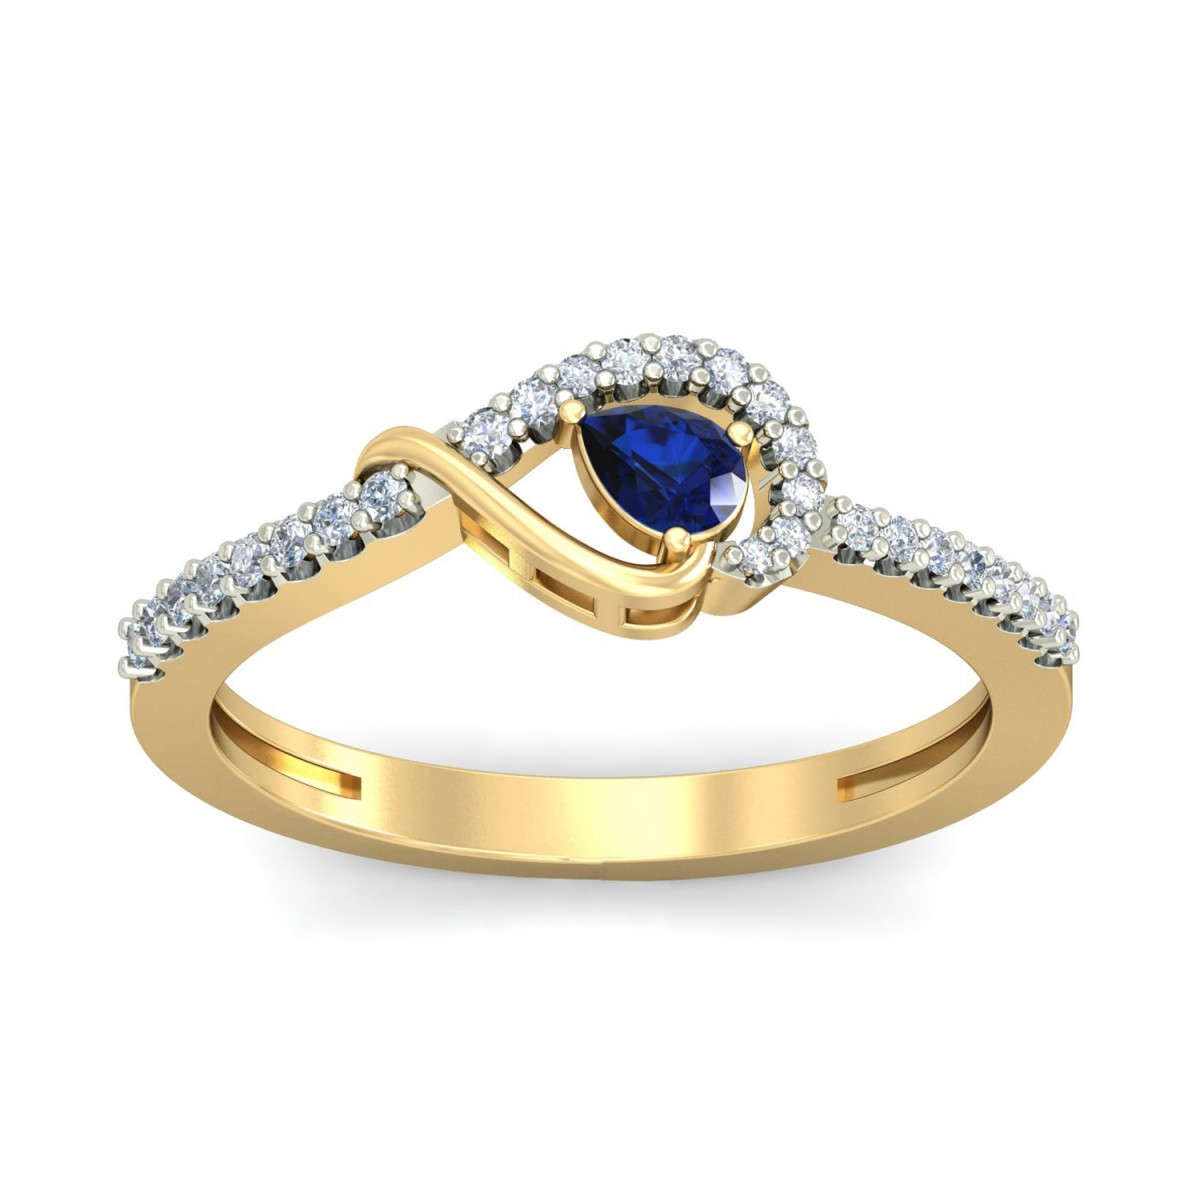 diamond wedding ring engagement ring blue sapphire bridal ring diamond rings diamond. Black Bedroom Furniture Sets. Home Design Ideas